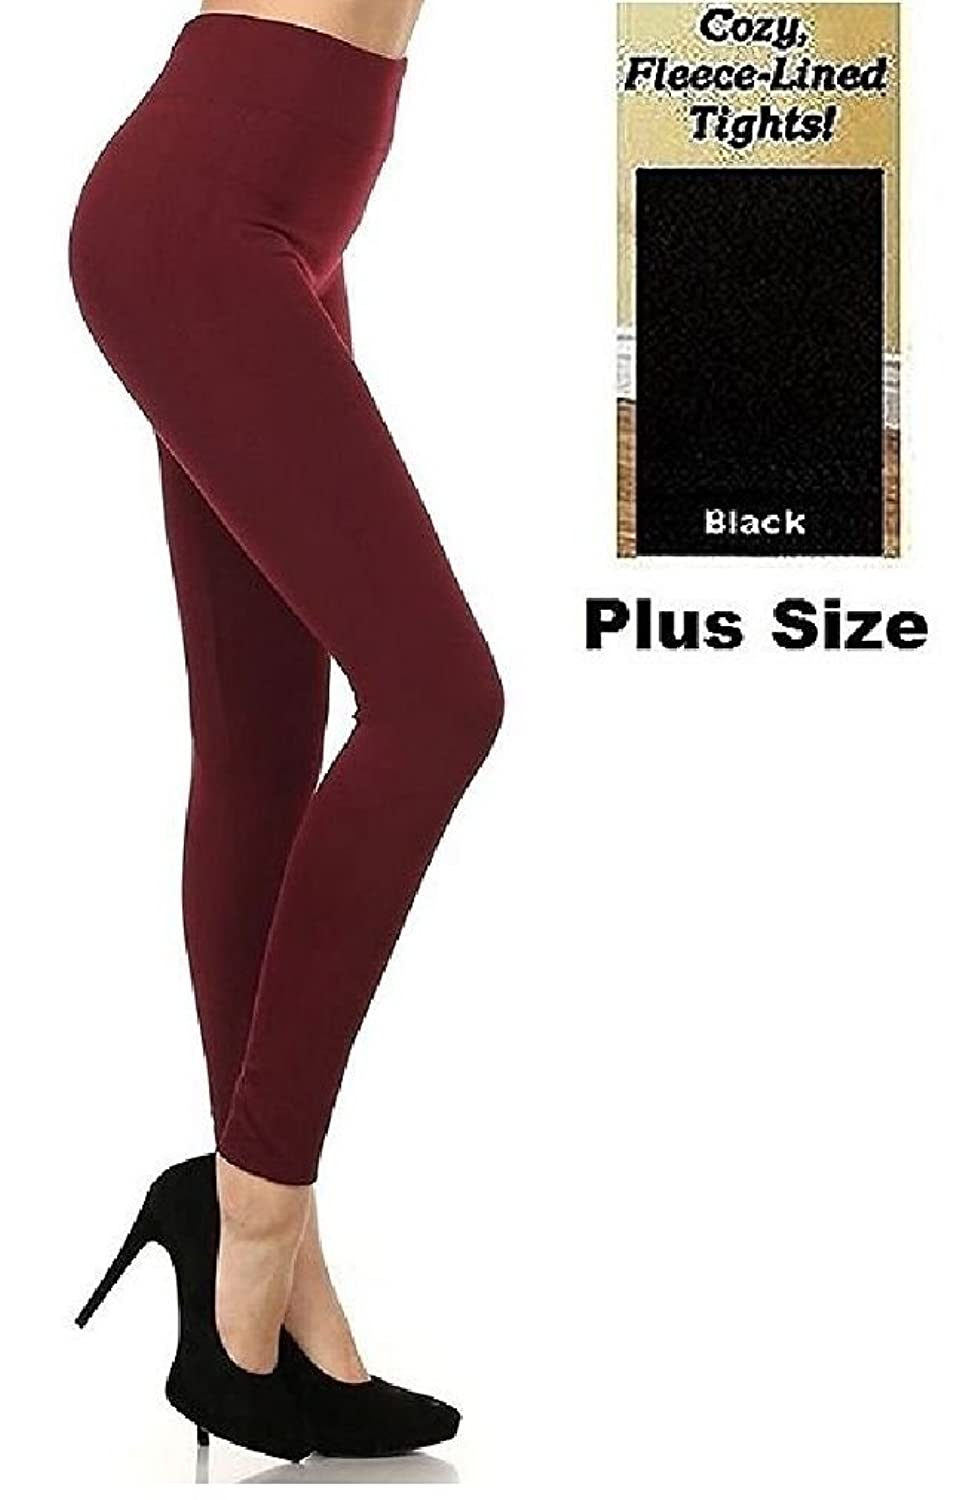 Ponce PLUS SIZE Seamless FOOTLESS Warm Thick Fleece Legging NEW SK300 1X 2X 3X